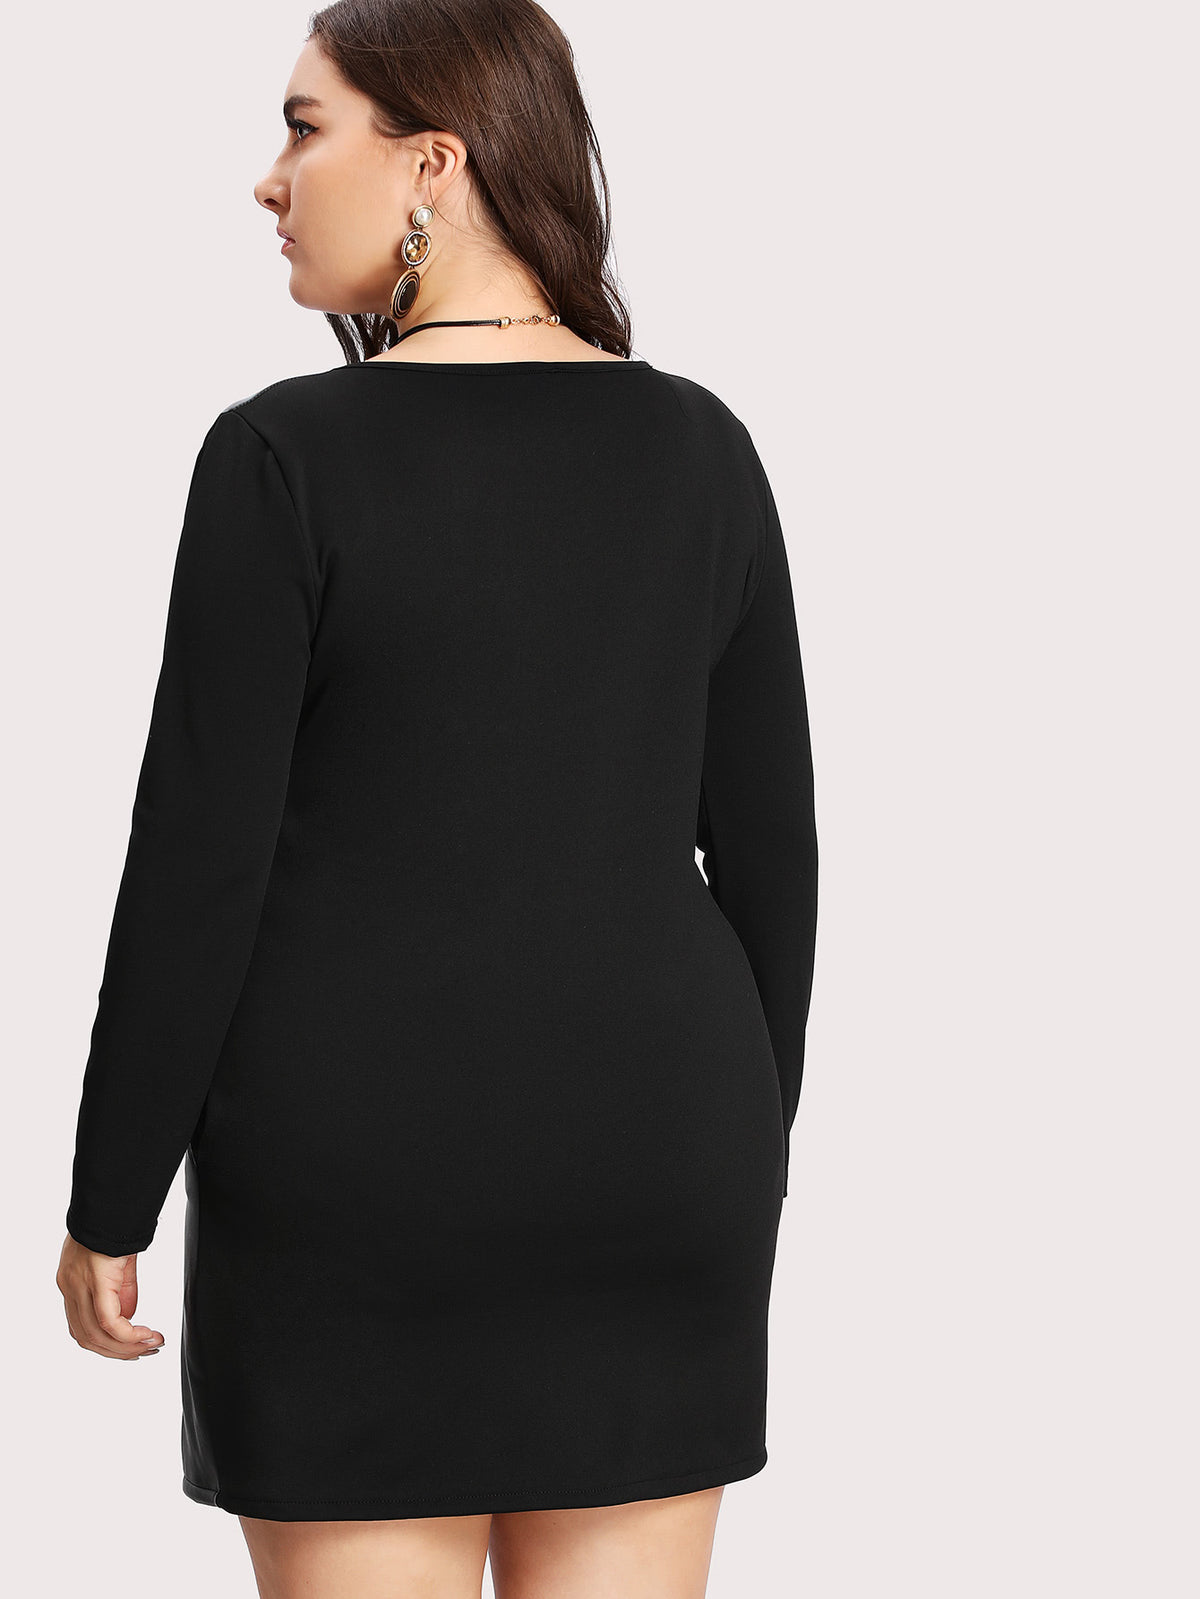 Contrast PU Grommet Detail Dress With Necklace